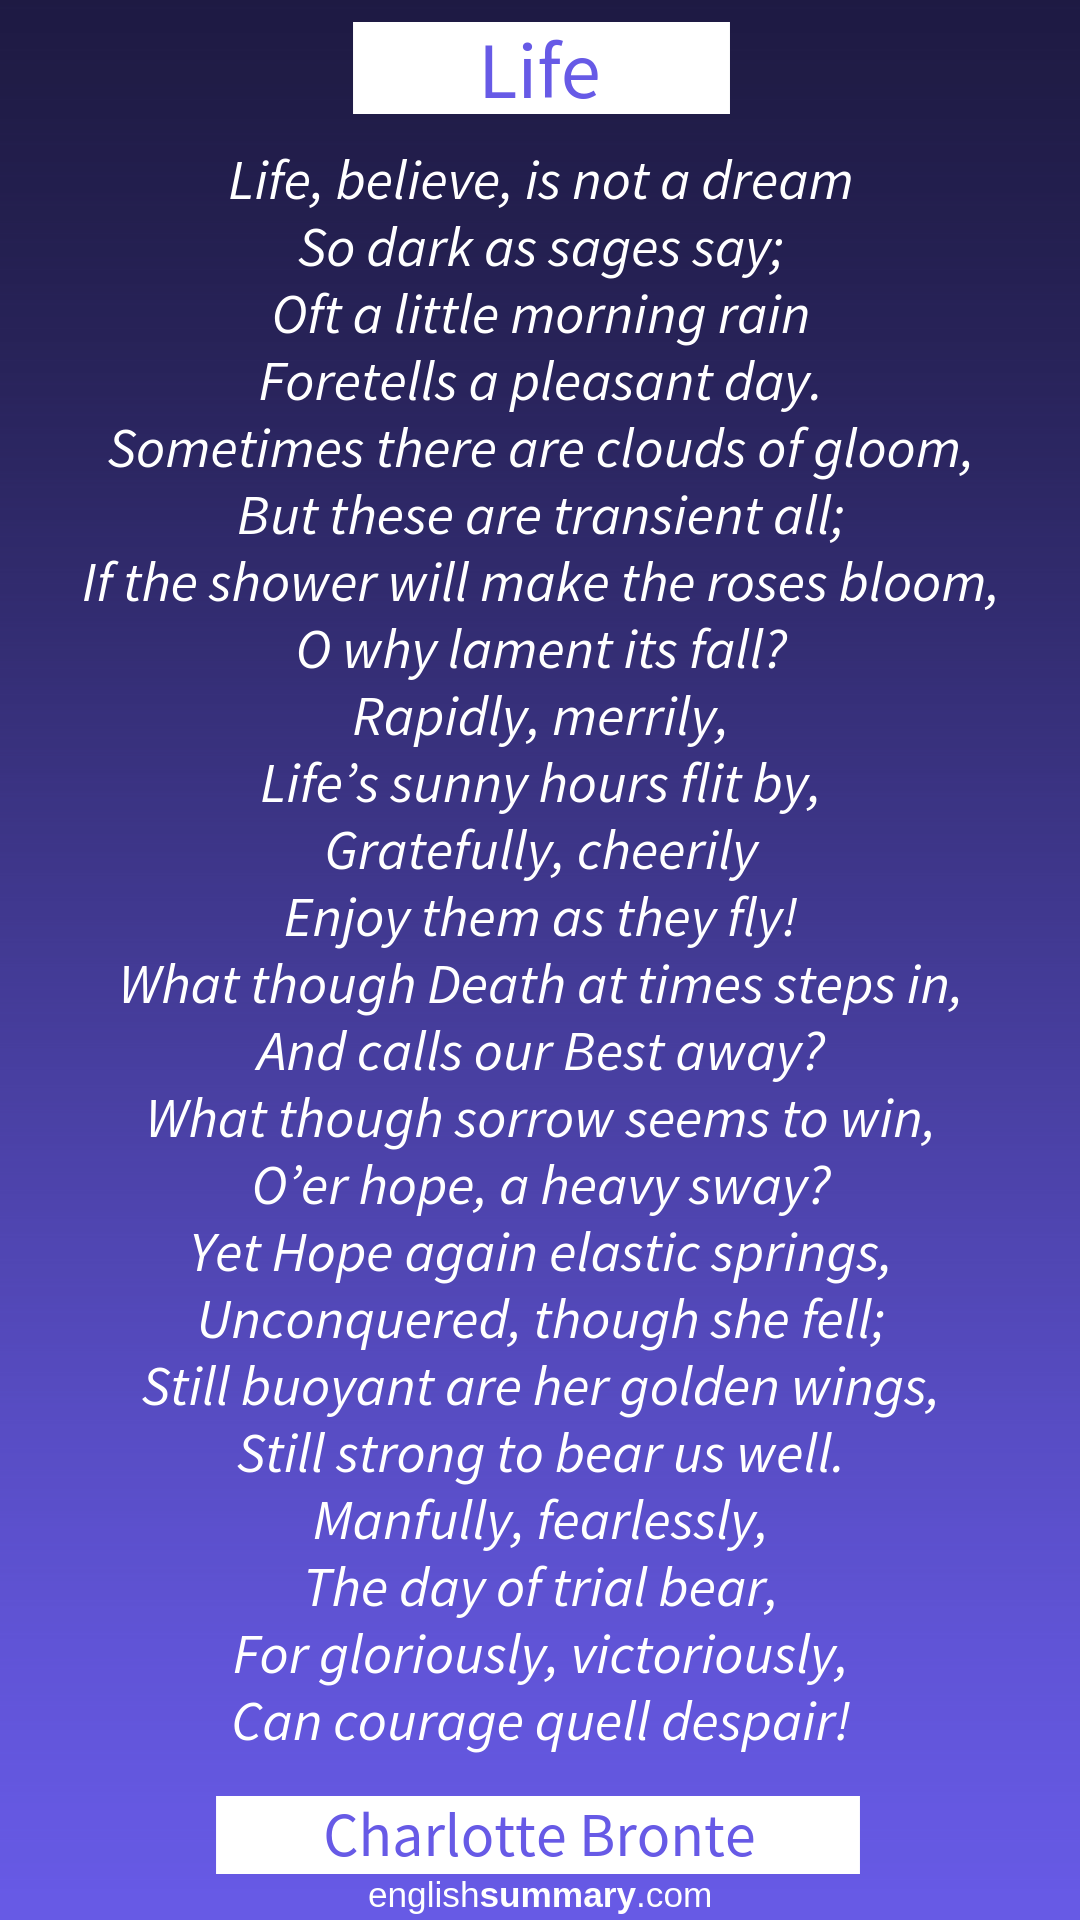 Life By Charlotte Bronte Believe I Not A Dream So Dark Sage Say Oft Little Morning Rain Foret Poem About Aesthetic Word Literature Quotes Shakespeare Sonnet 27 Analysis